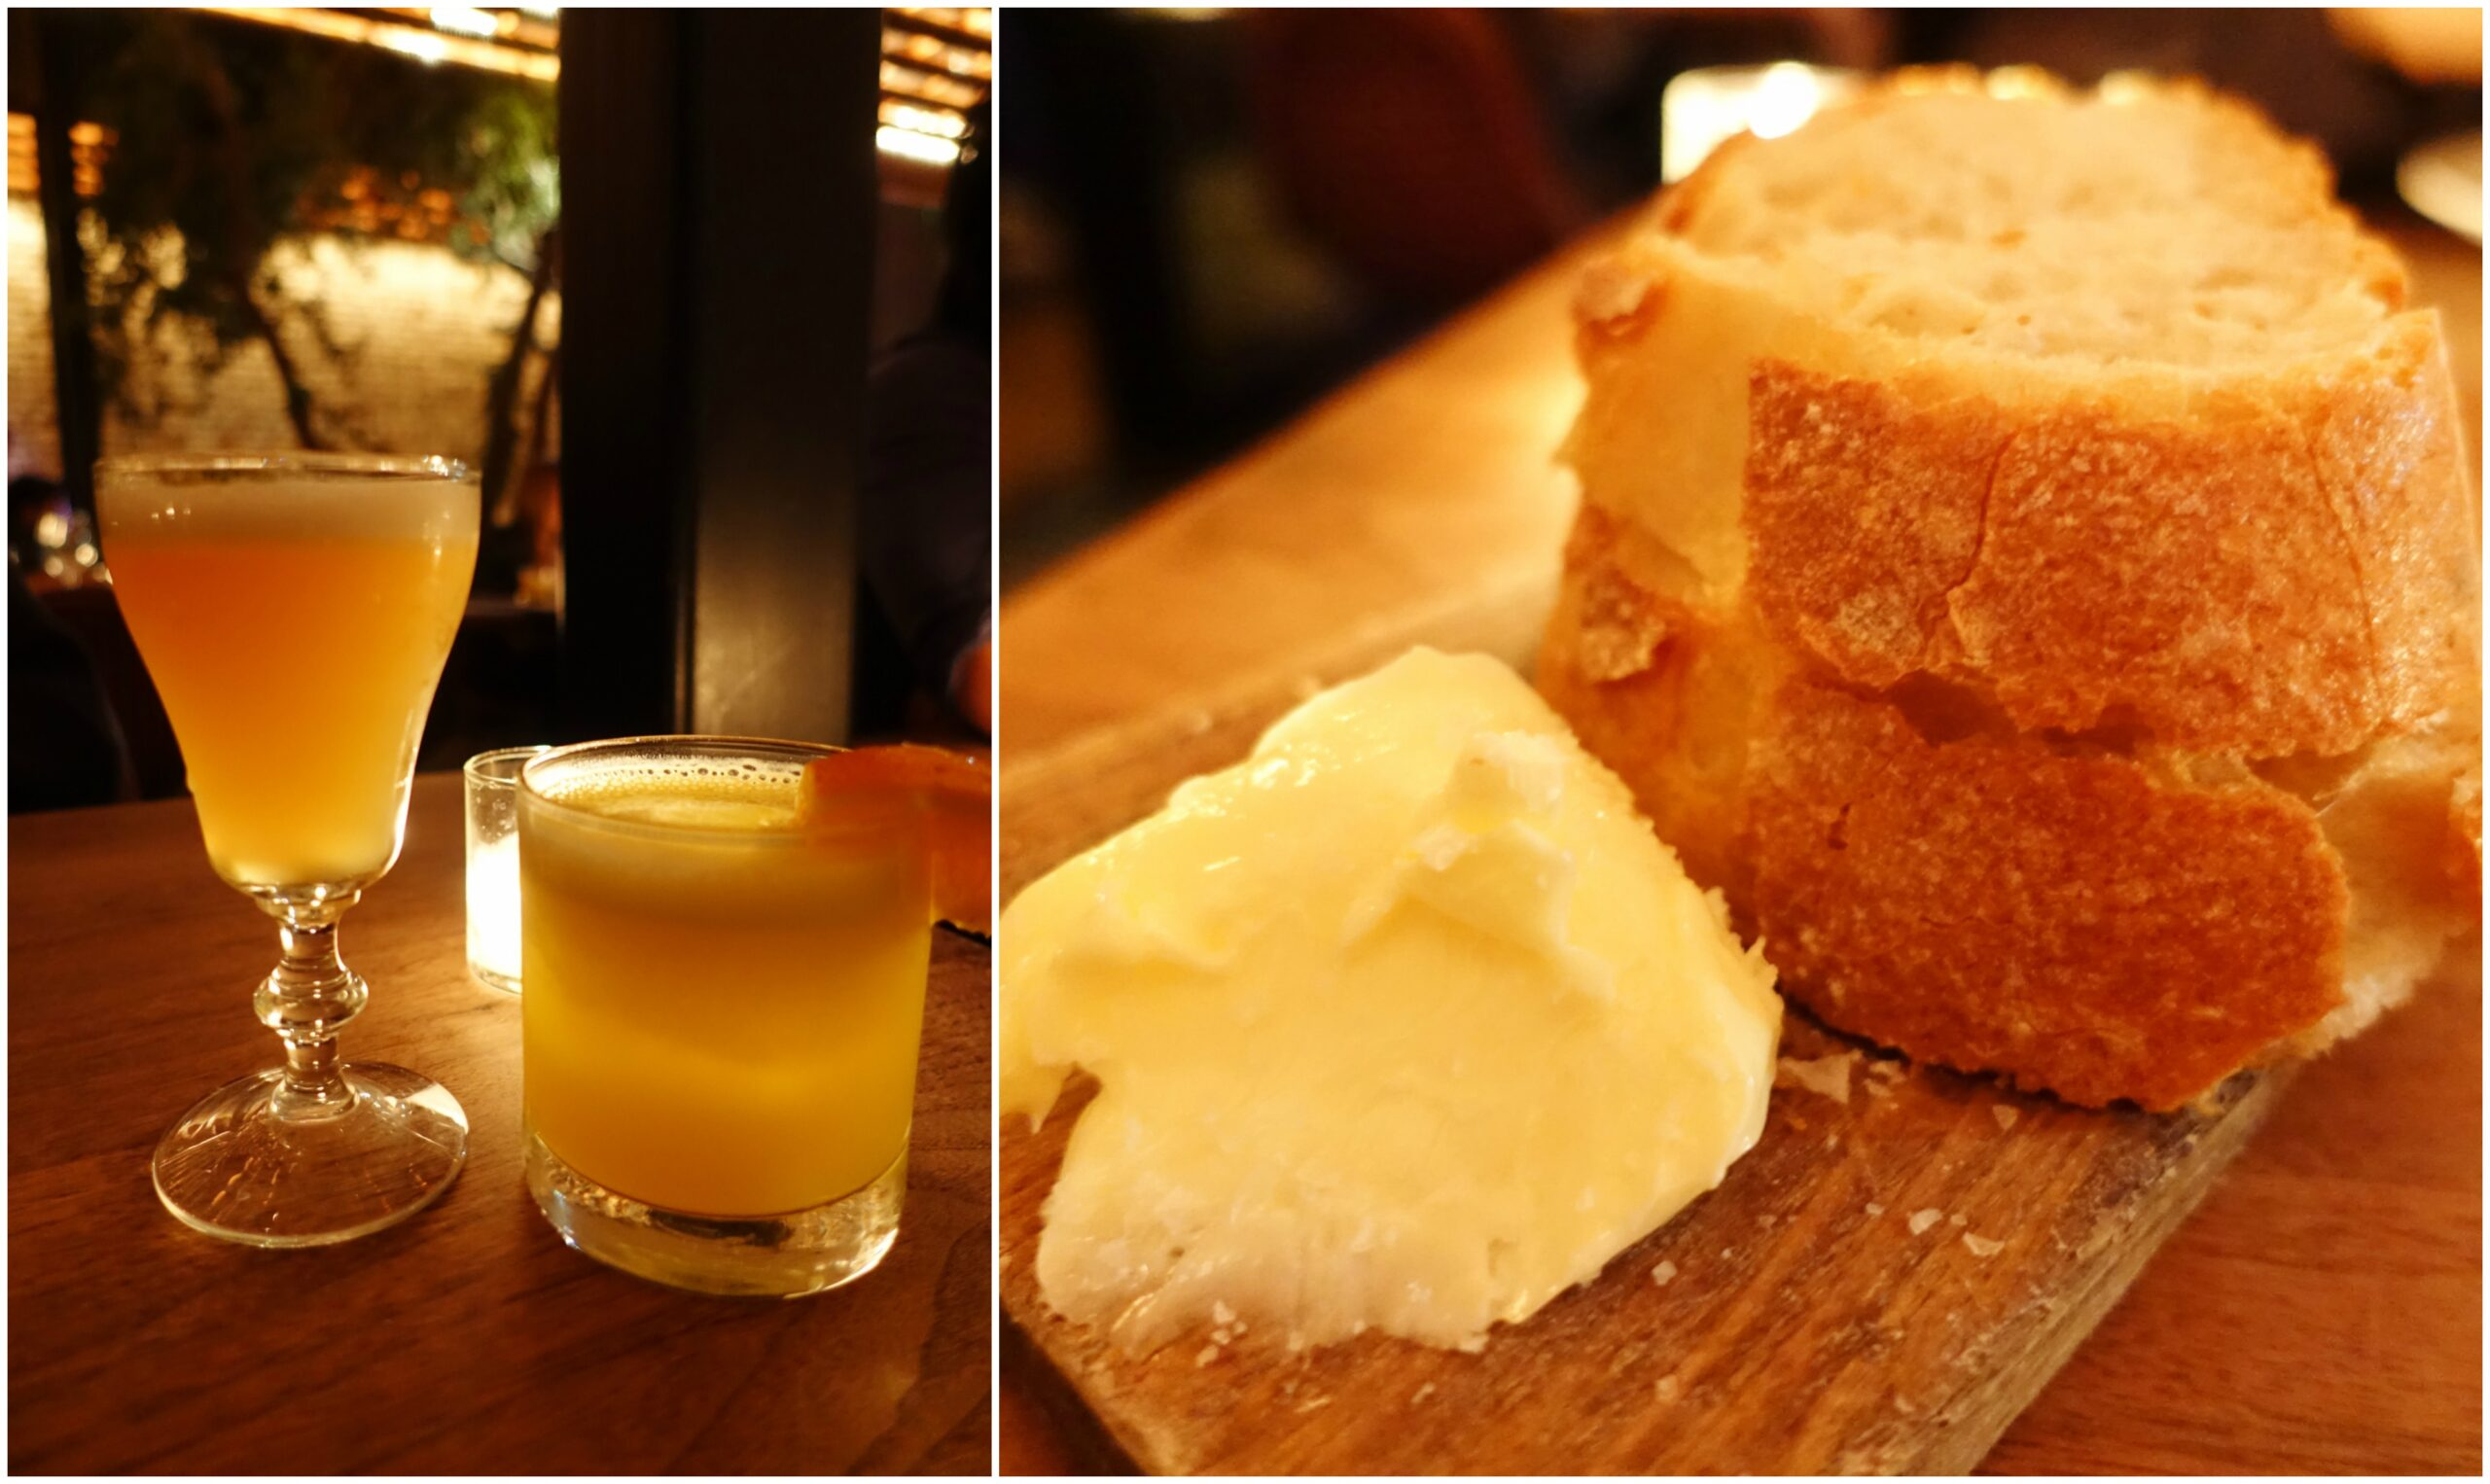 Cocktails, Bread & Butter - The Tasting Kitchen - Venice, Los Angeles, California